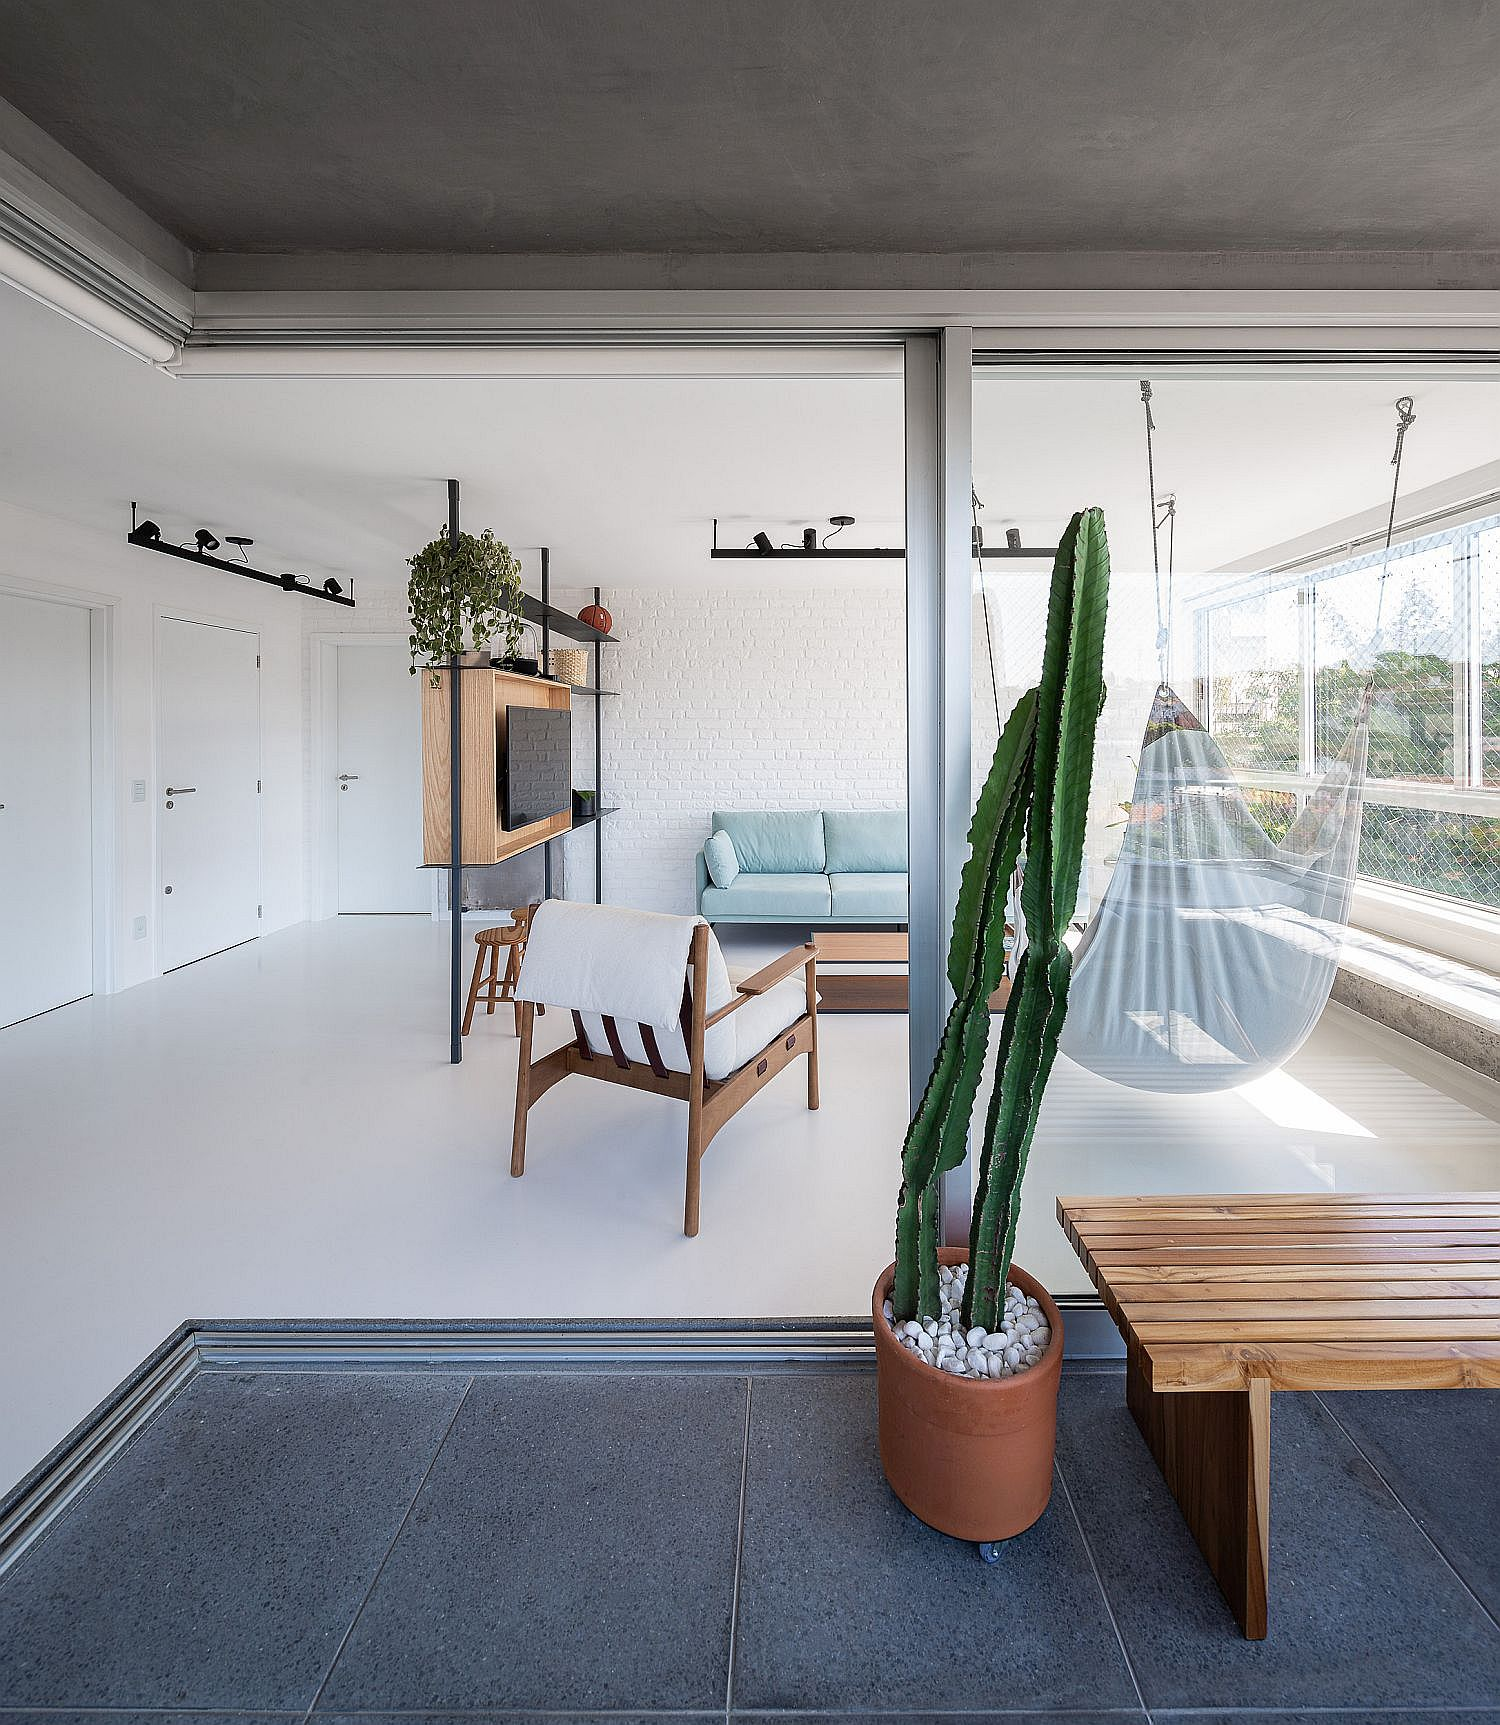 Homeowners can enjoy the TV from the balcony as well